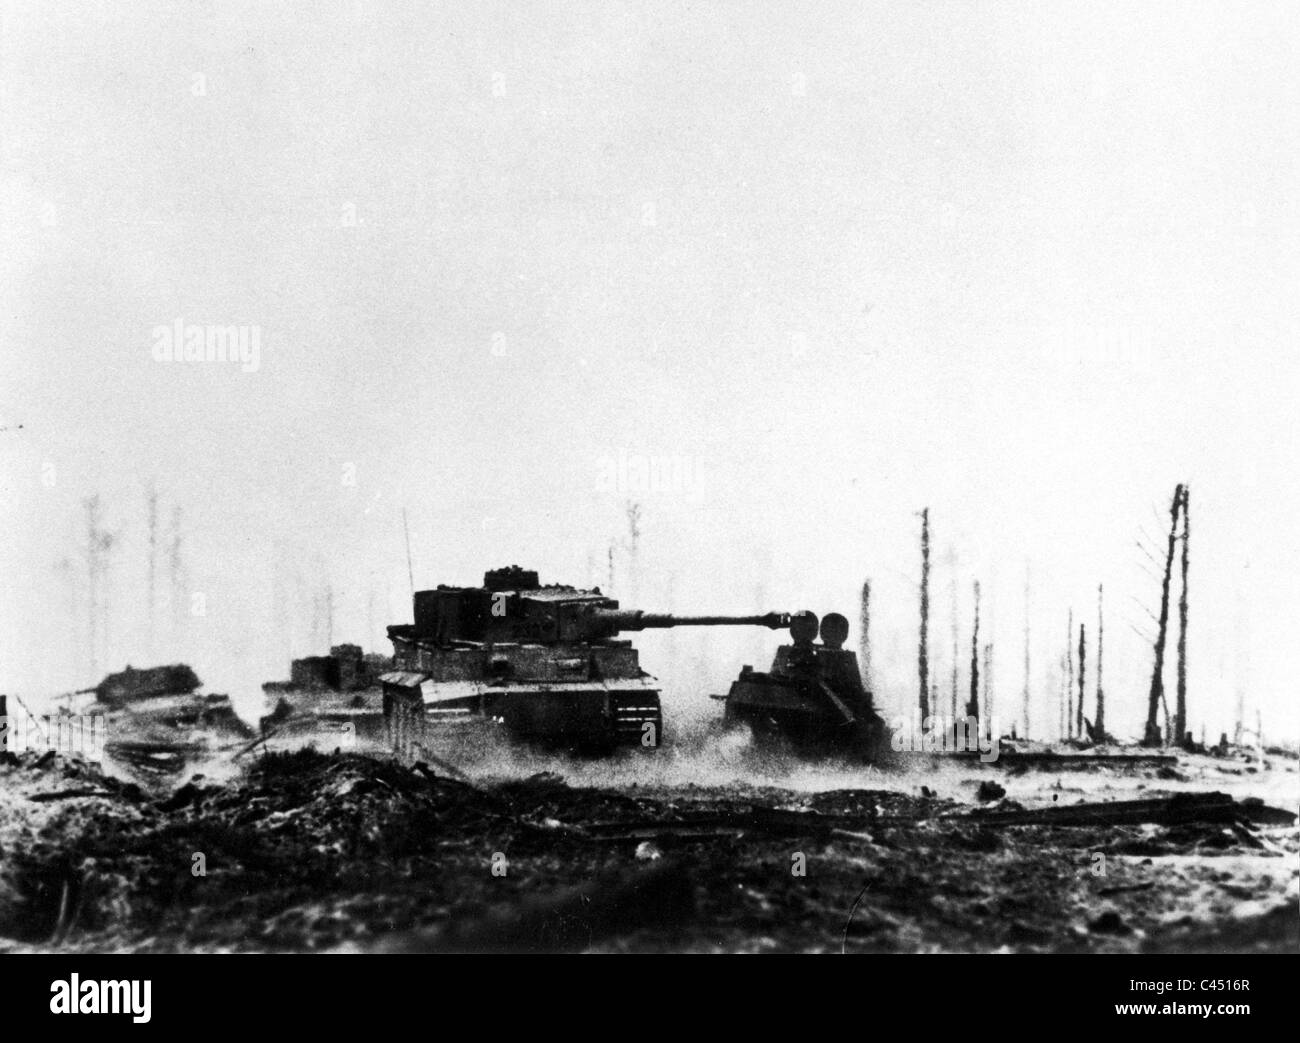 German Tiger Tank Black and White Stock Photos & Images - Alamy